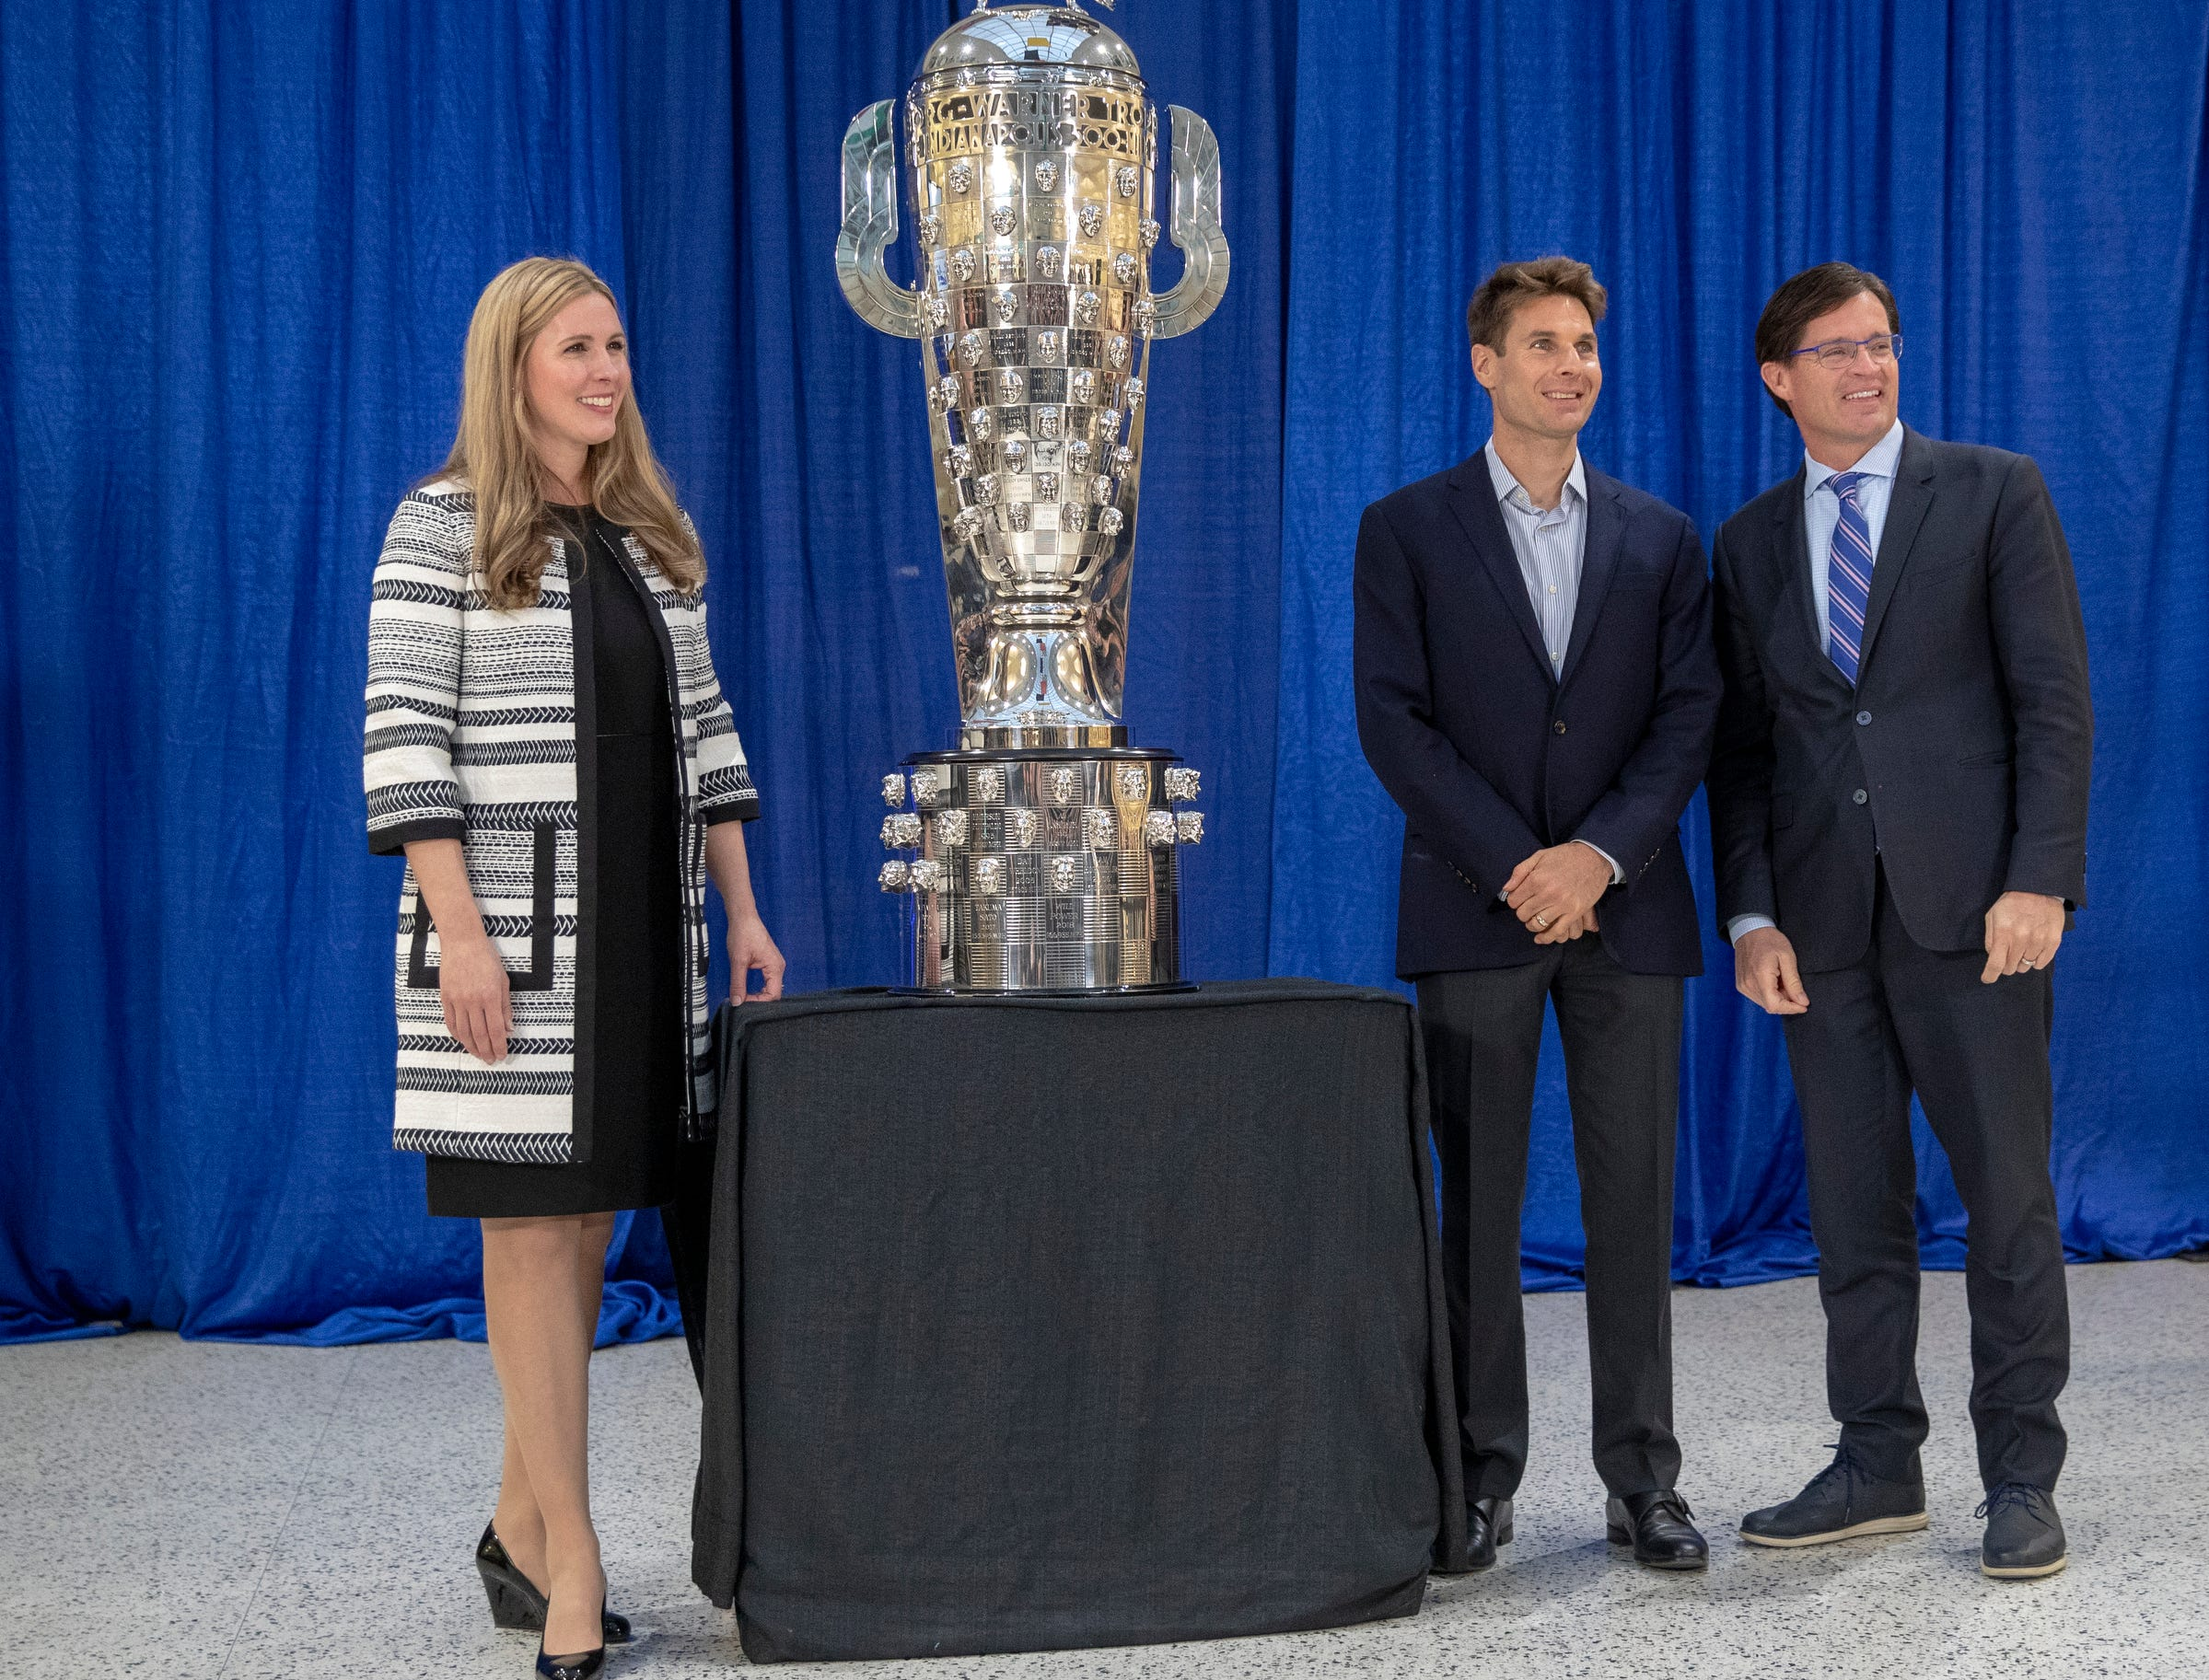 Michelle Collins (left), Will Power, and Doug Boles, pose for photos with the recently modified Borg-Warner trophy, Indianapolis Motor Speedway, Wednesday, Dec. 5, 2018. Power is an Australian driver with Team Penske, and is the 105th face on the trophy.